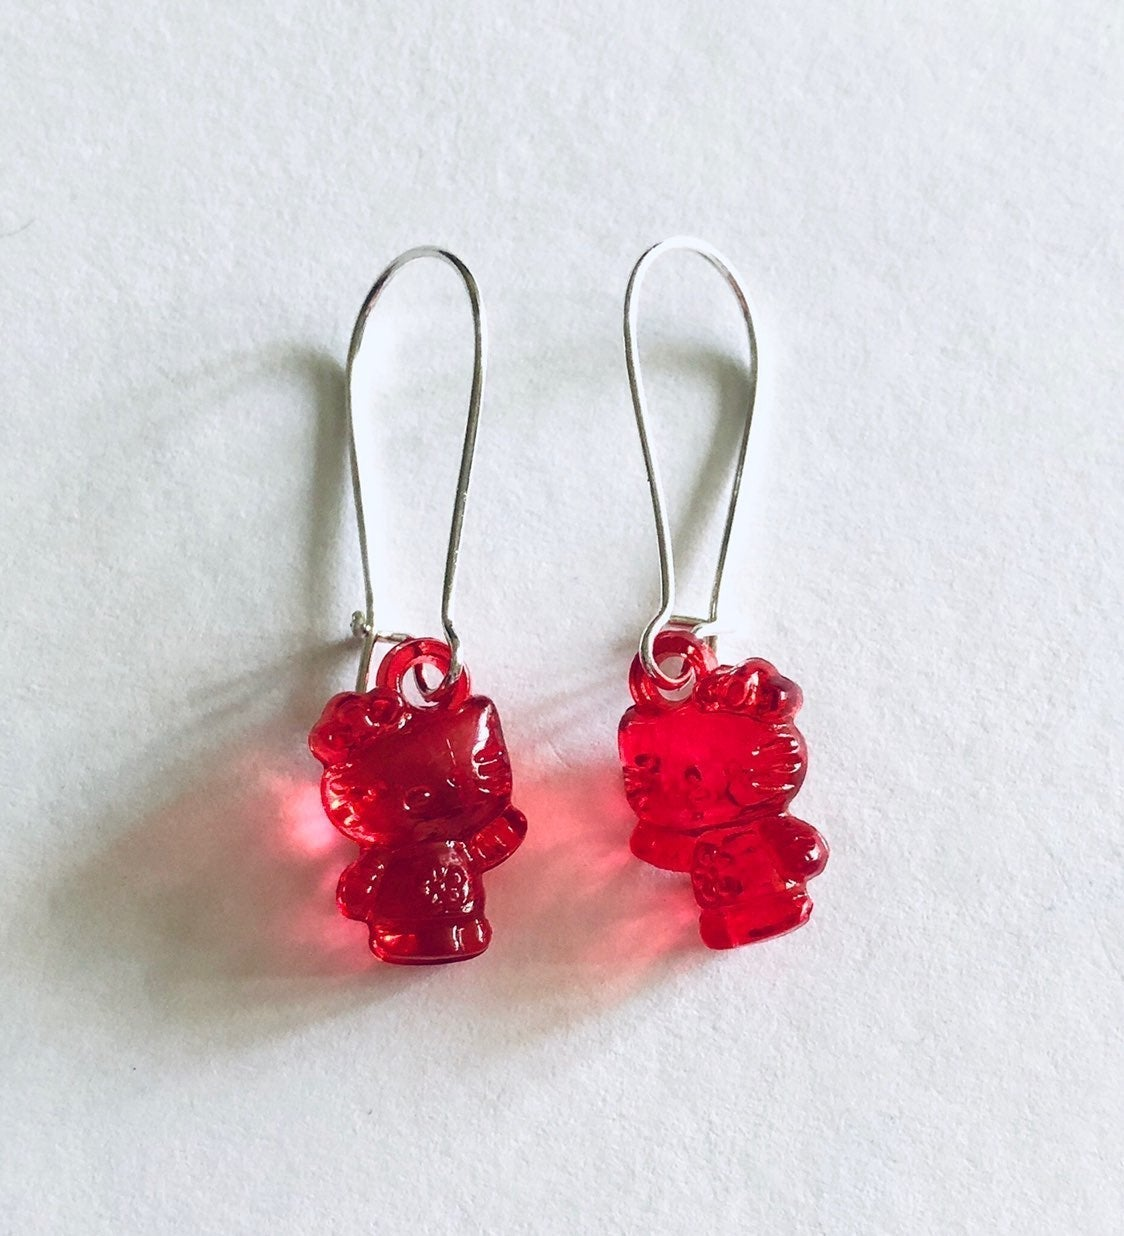 Hello Kitty Red Earrings Transparant